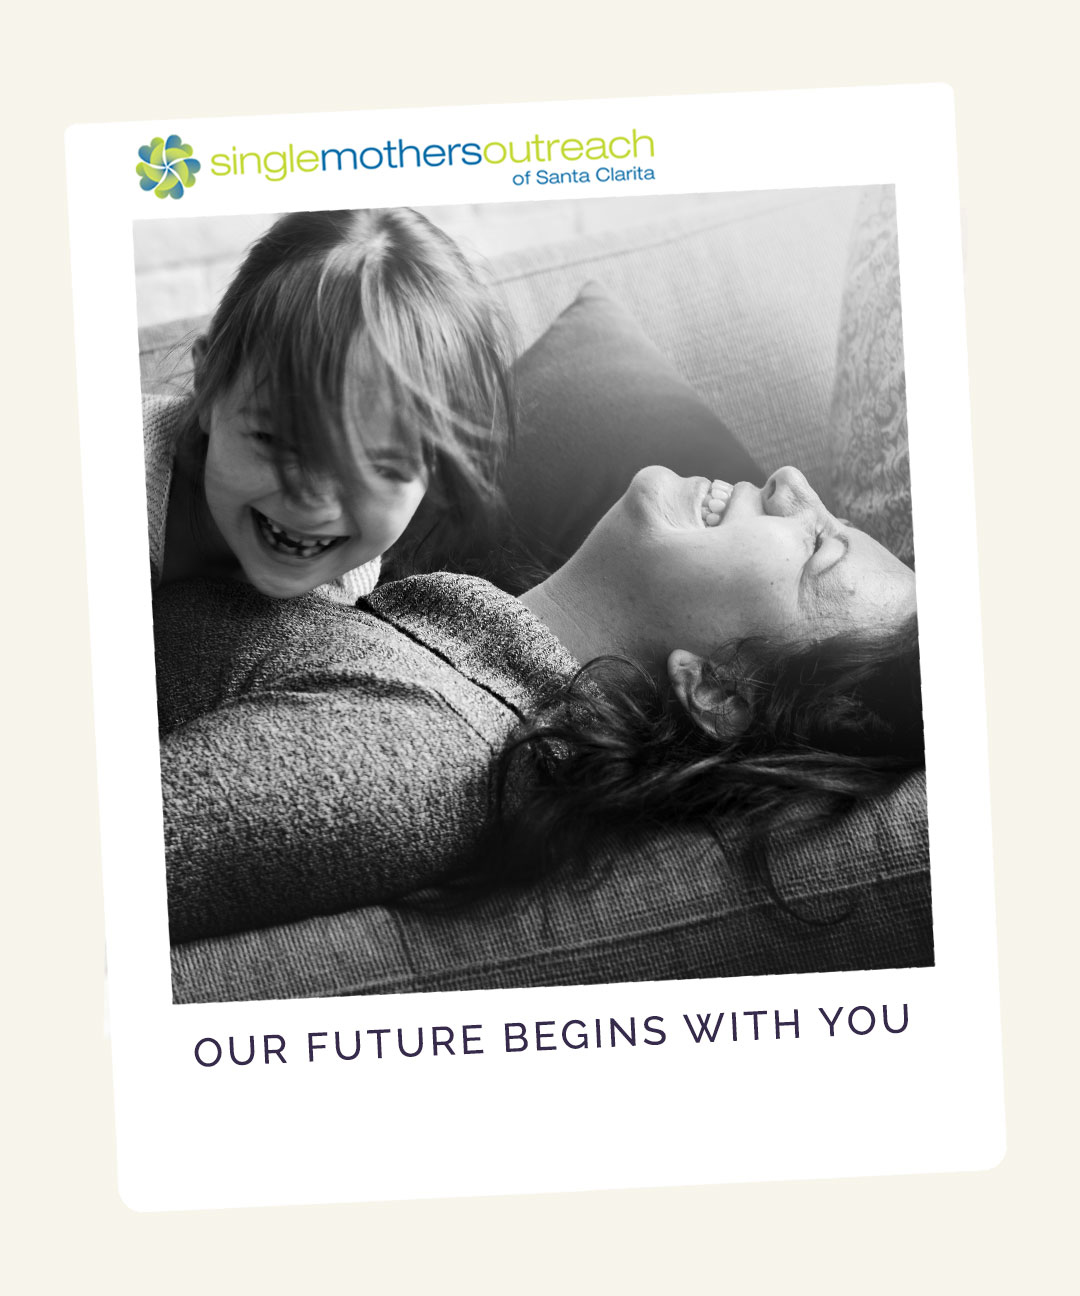 Single Mothers Outreach (SMO)